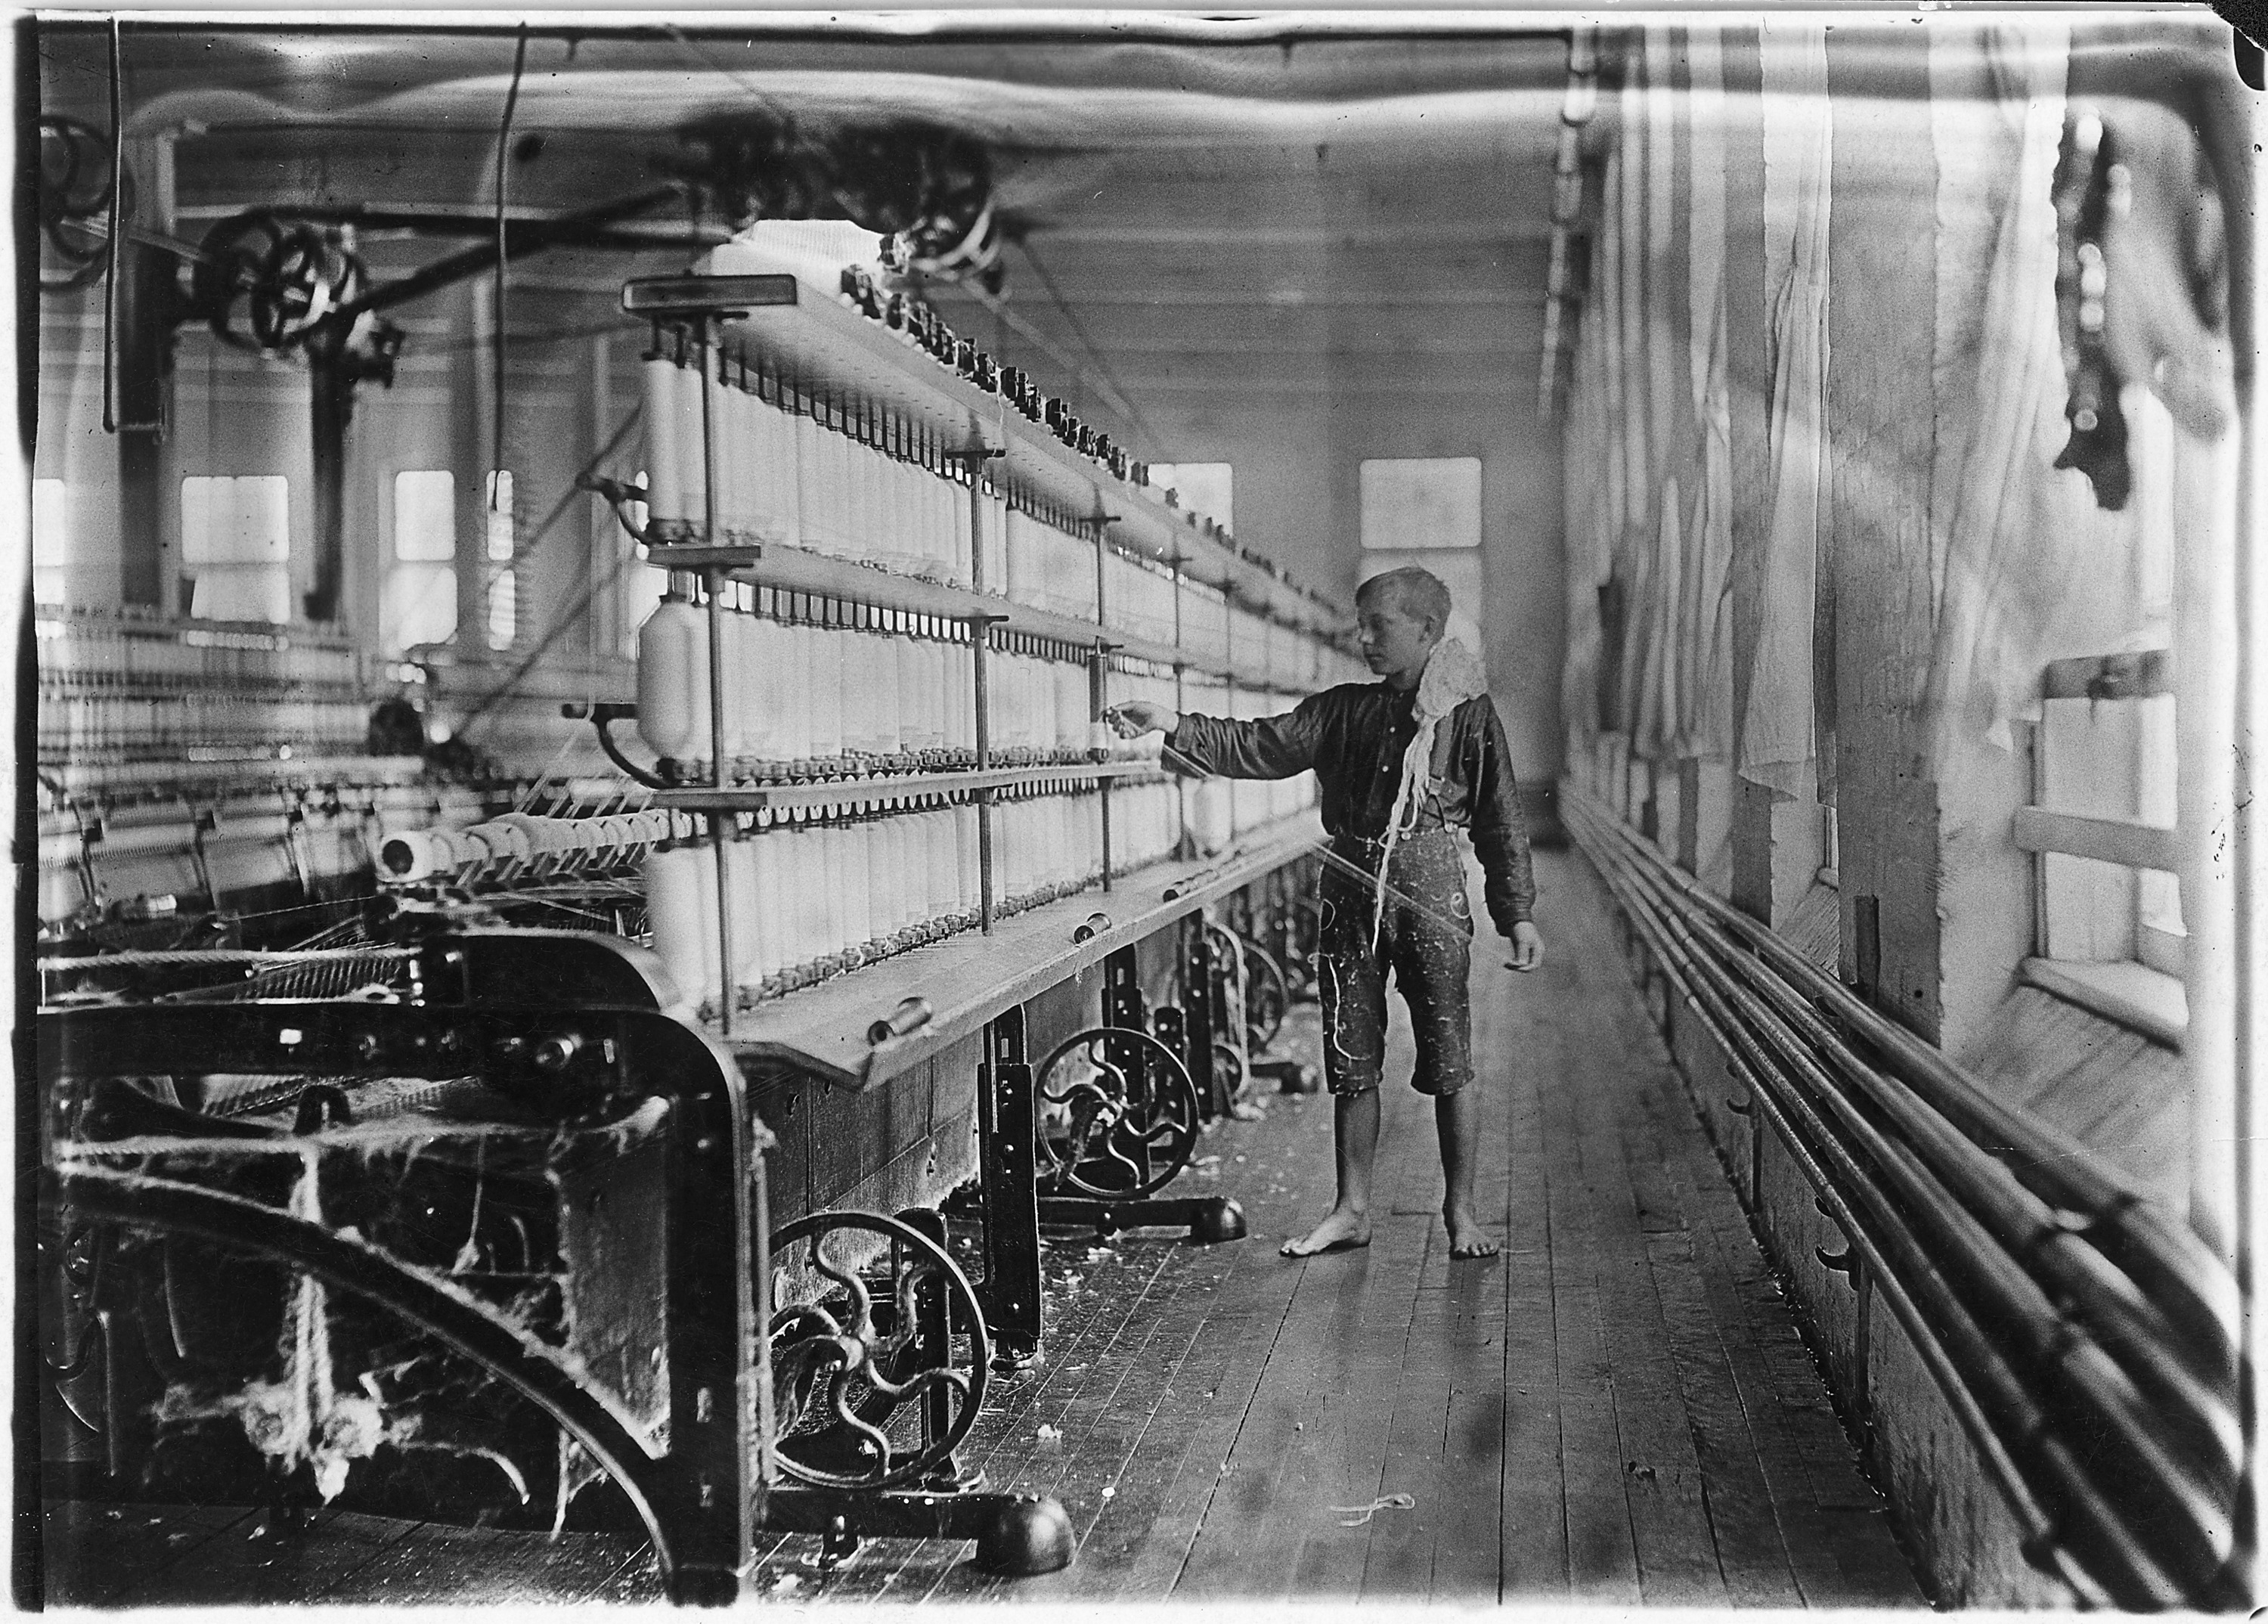 File:Mule-spinning room in Chace Cotton Mill. Raoul Julien ...